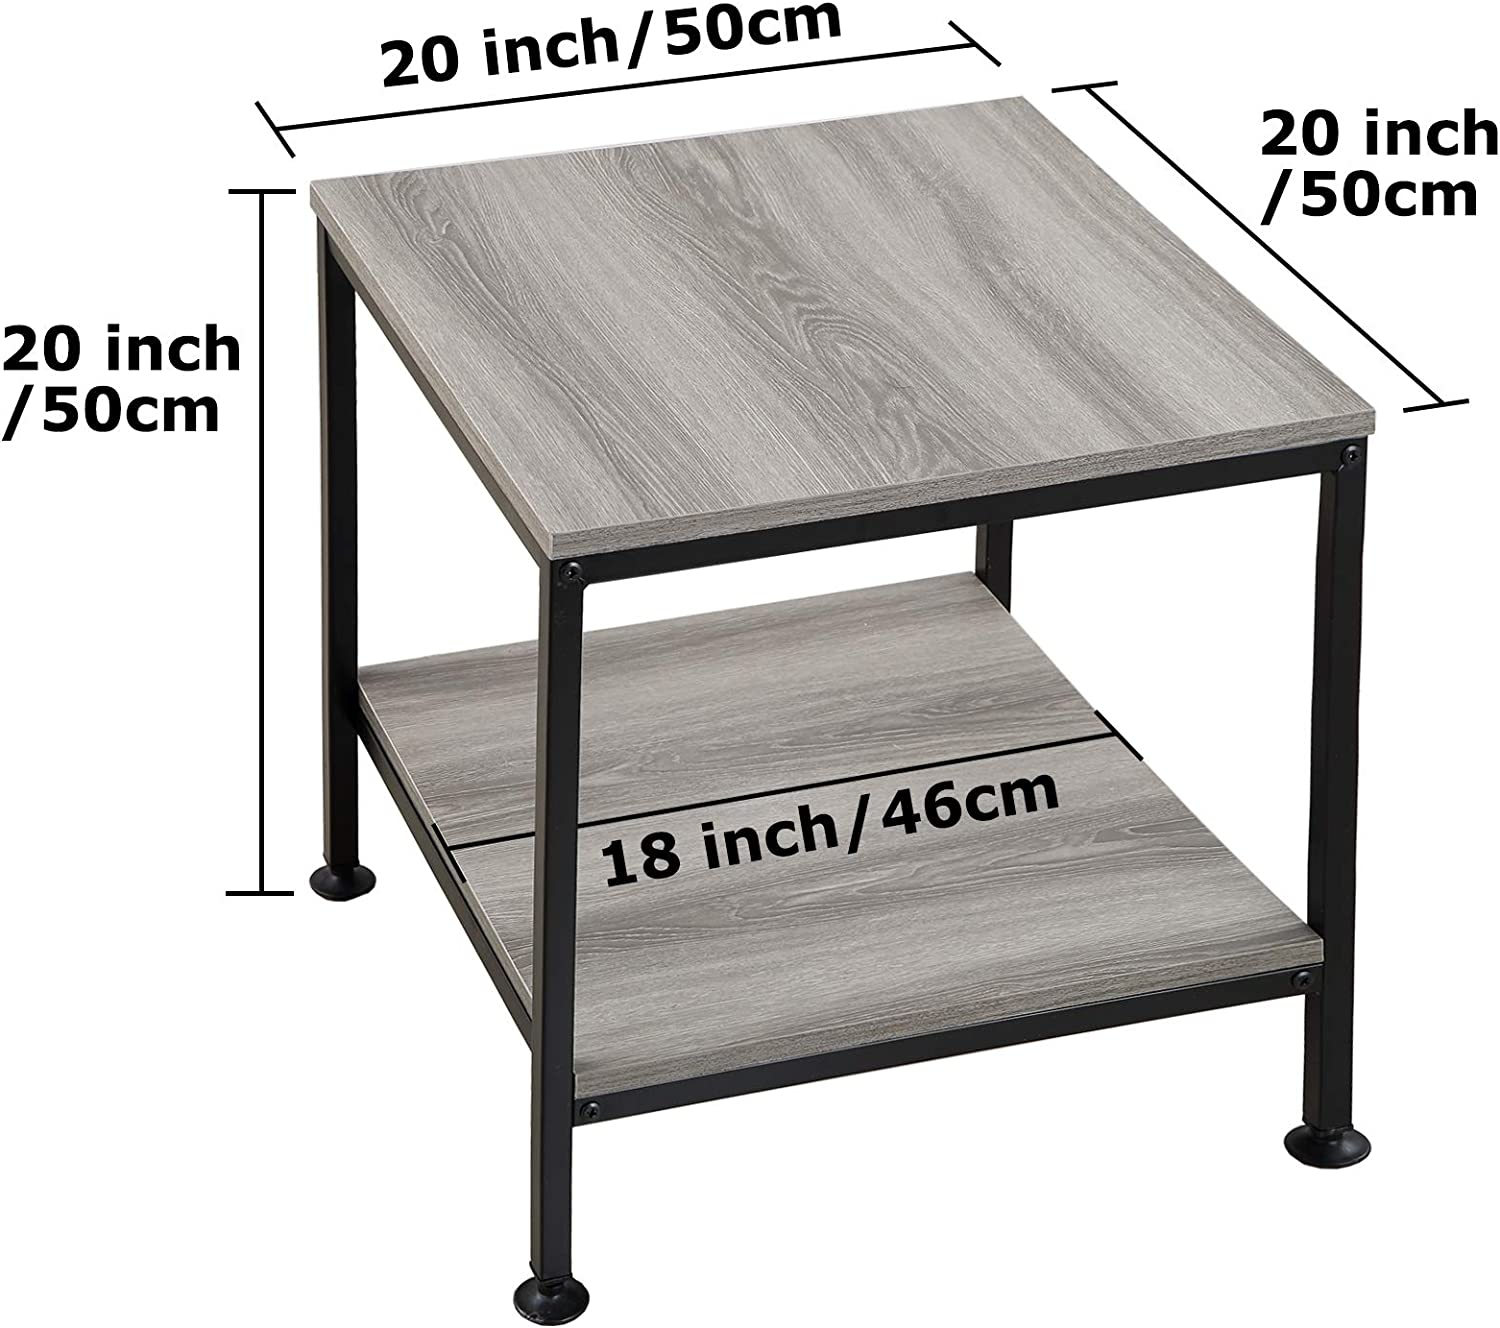 KirKical 20 Inch 2 Tiers Square End Table with Metal Frame,Rustic Grey Night Stand Side Table Sturdy Easy Assembly Simple Style for Living Room Bedroom(Set of 1)